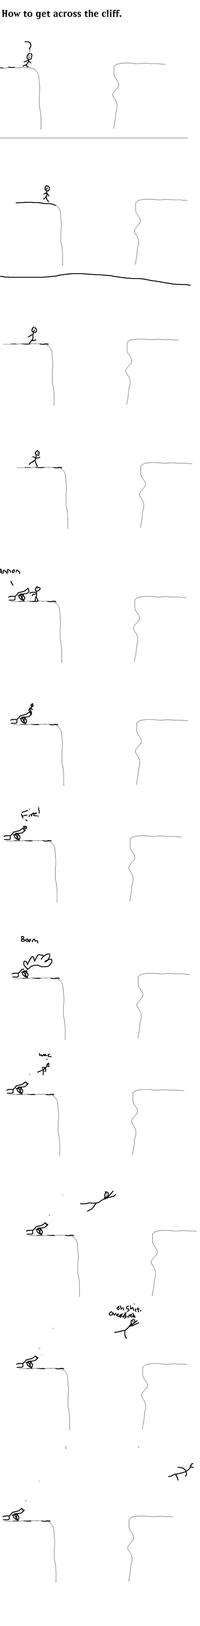 How to get Across the Cliff